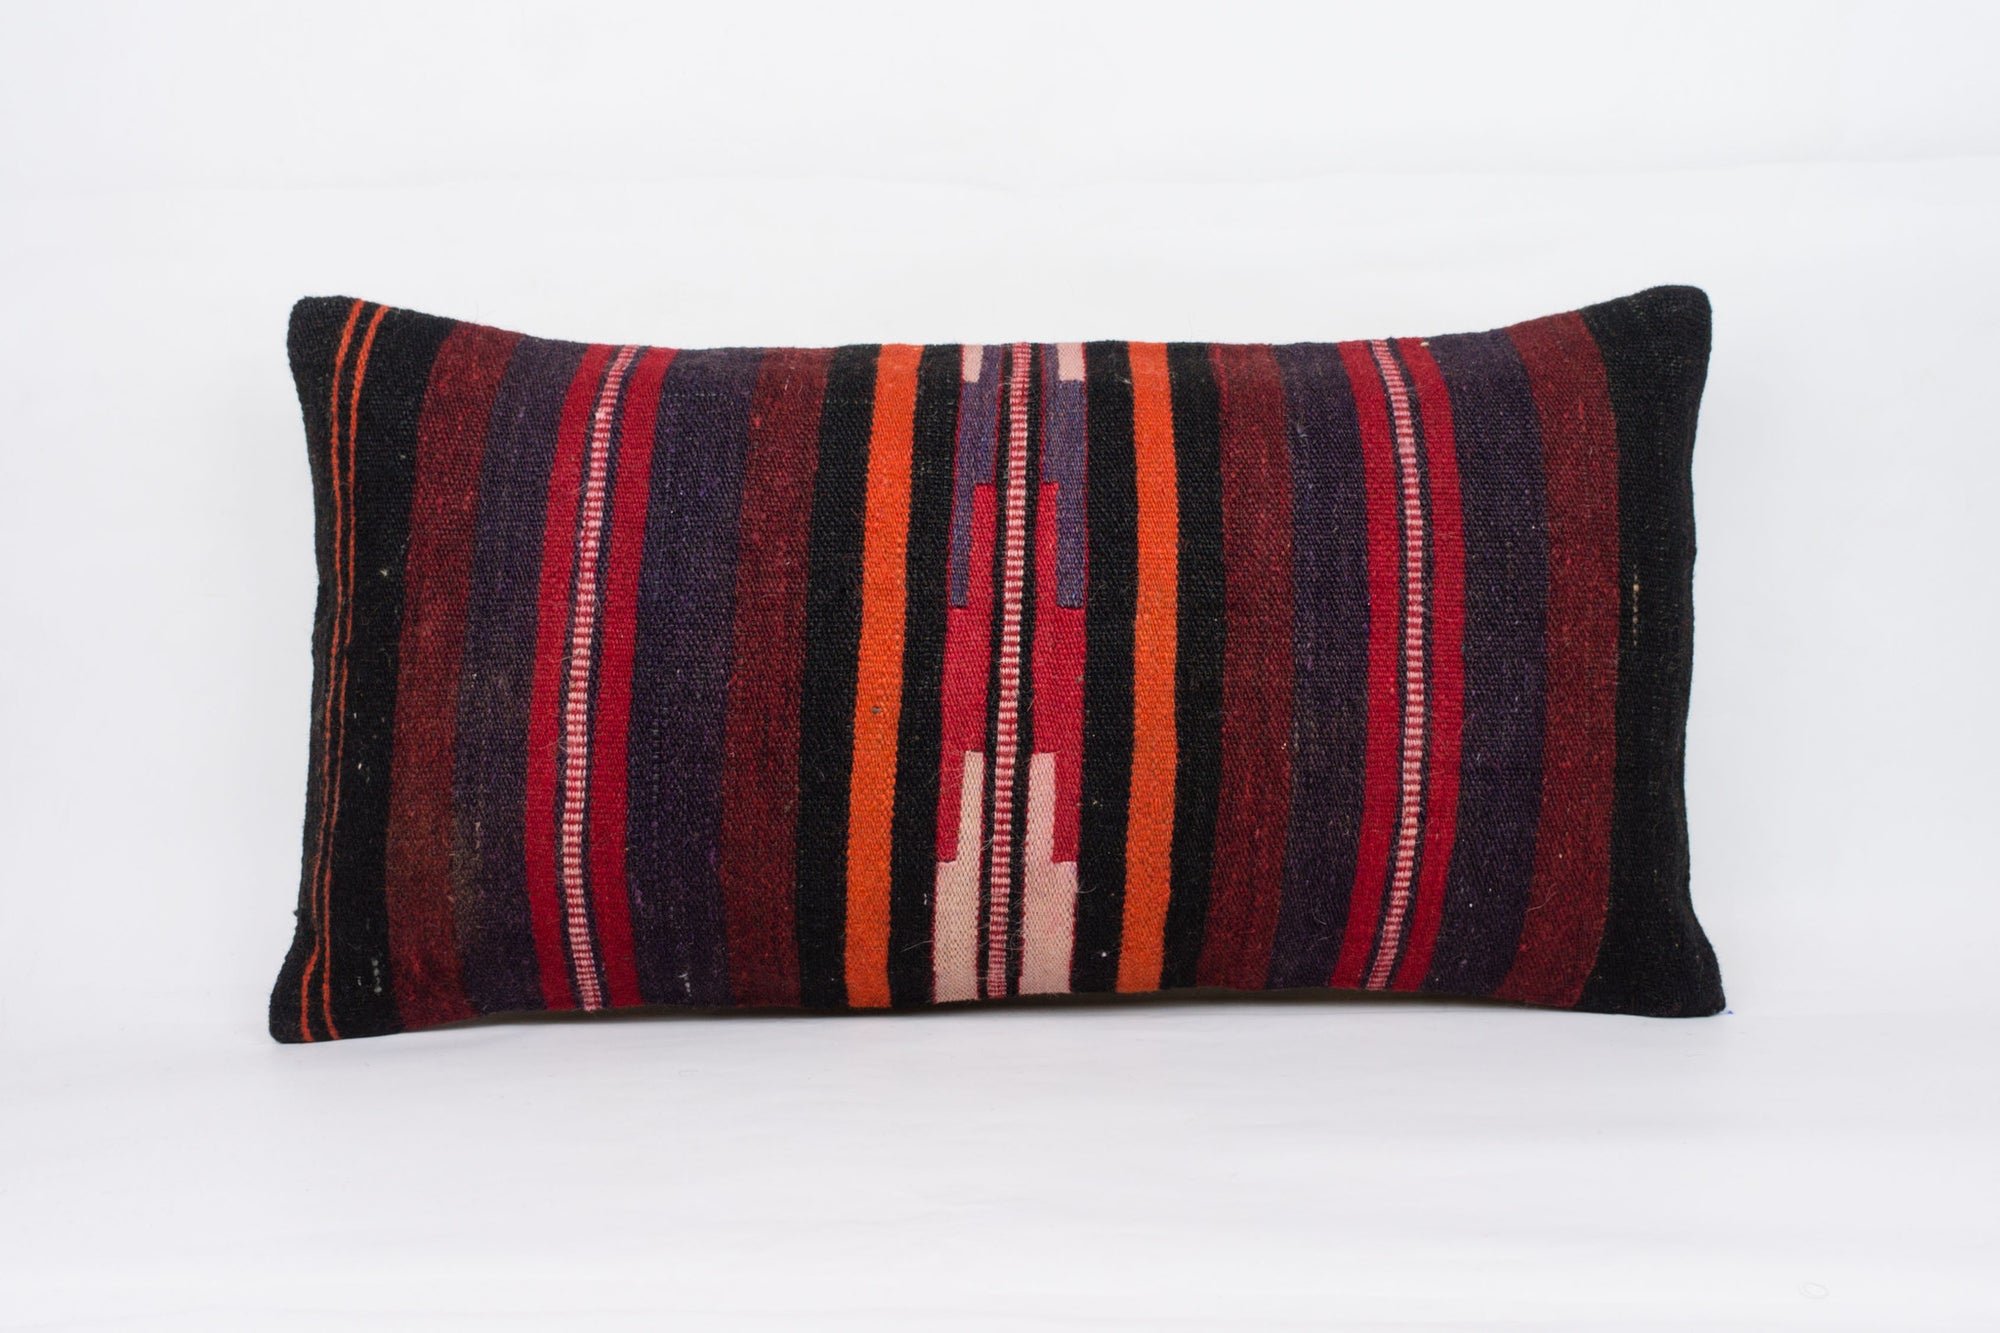 Striped Multi Color Kilim Pillow Cover 12x24 4065